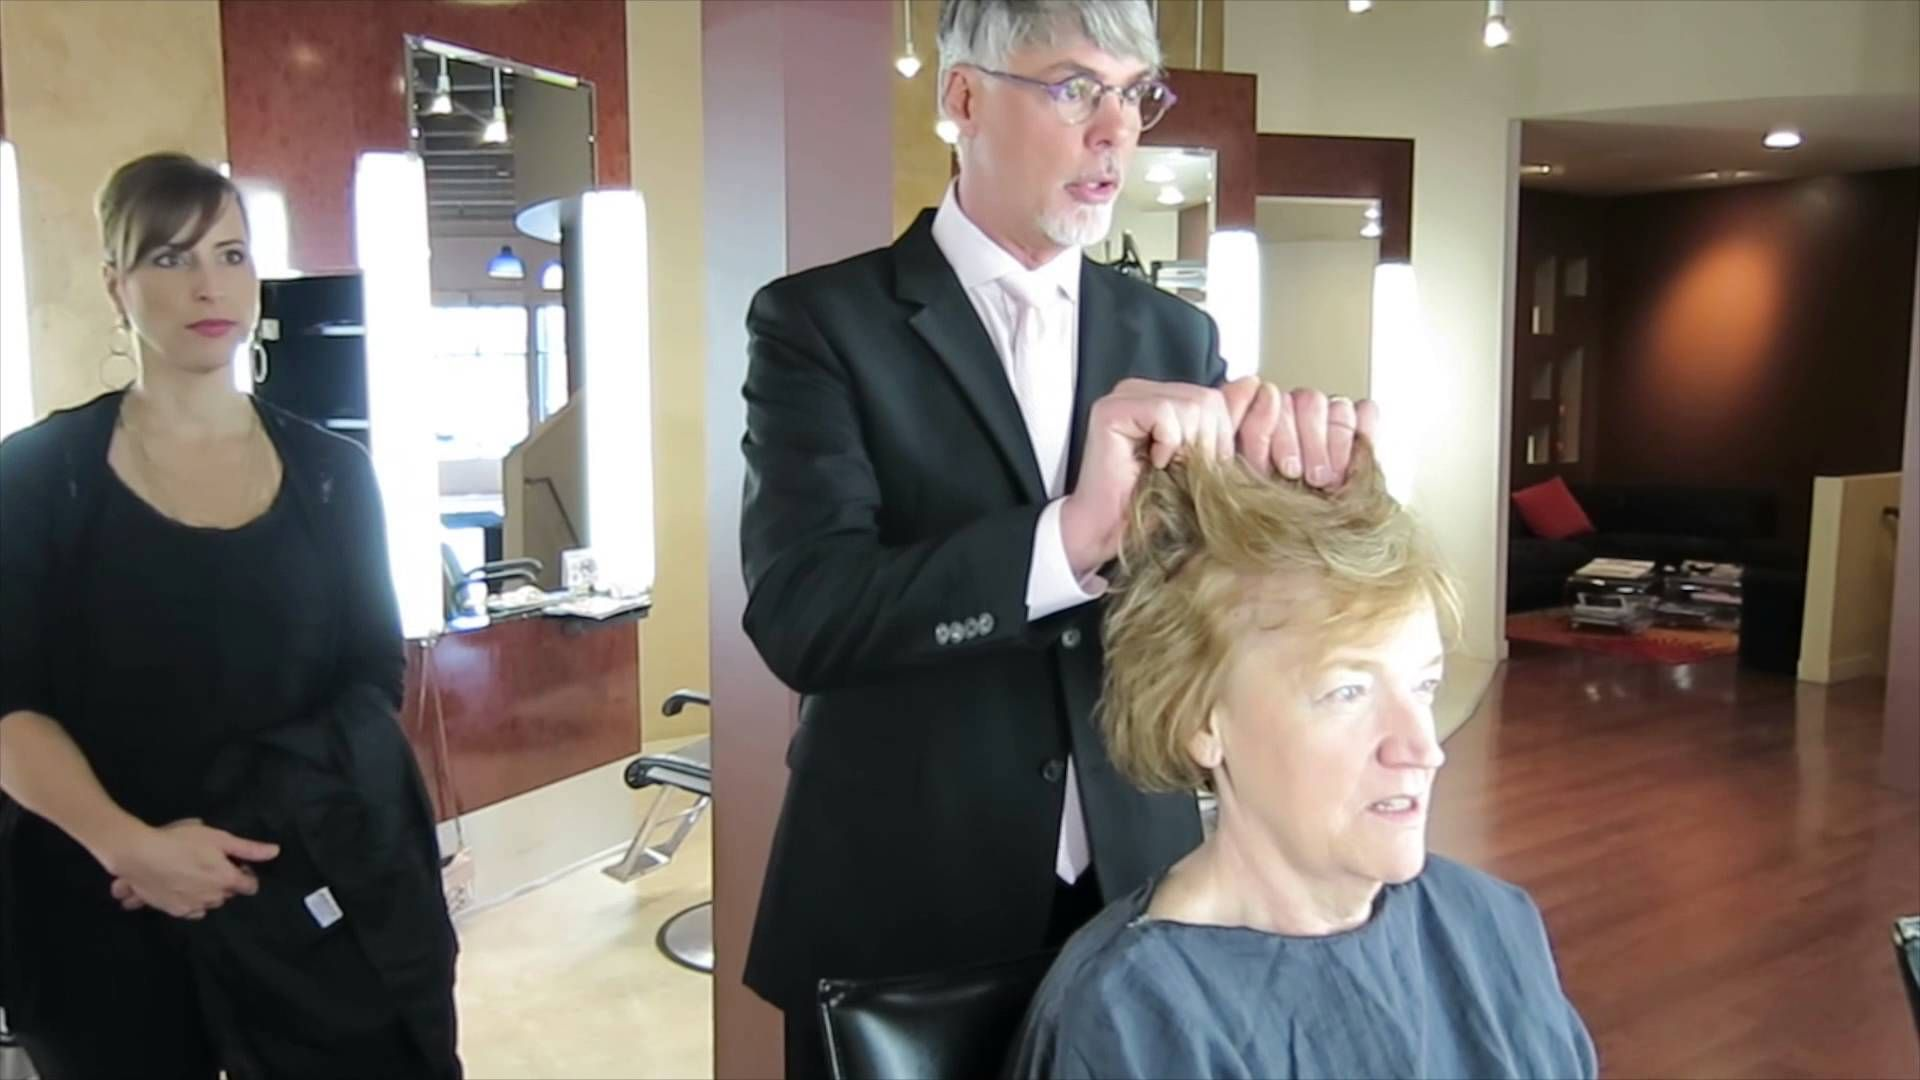 Makeover it was quite the lovely process by christopher hopkins